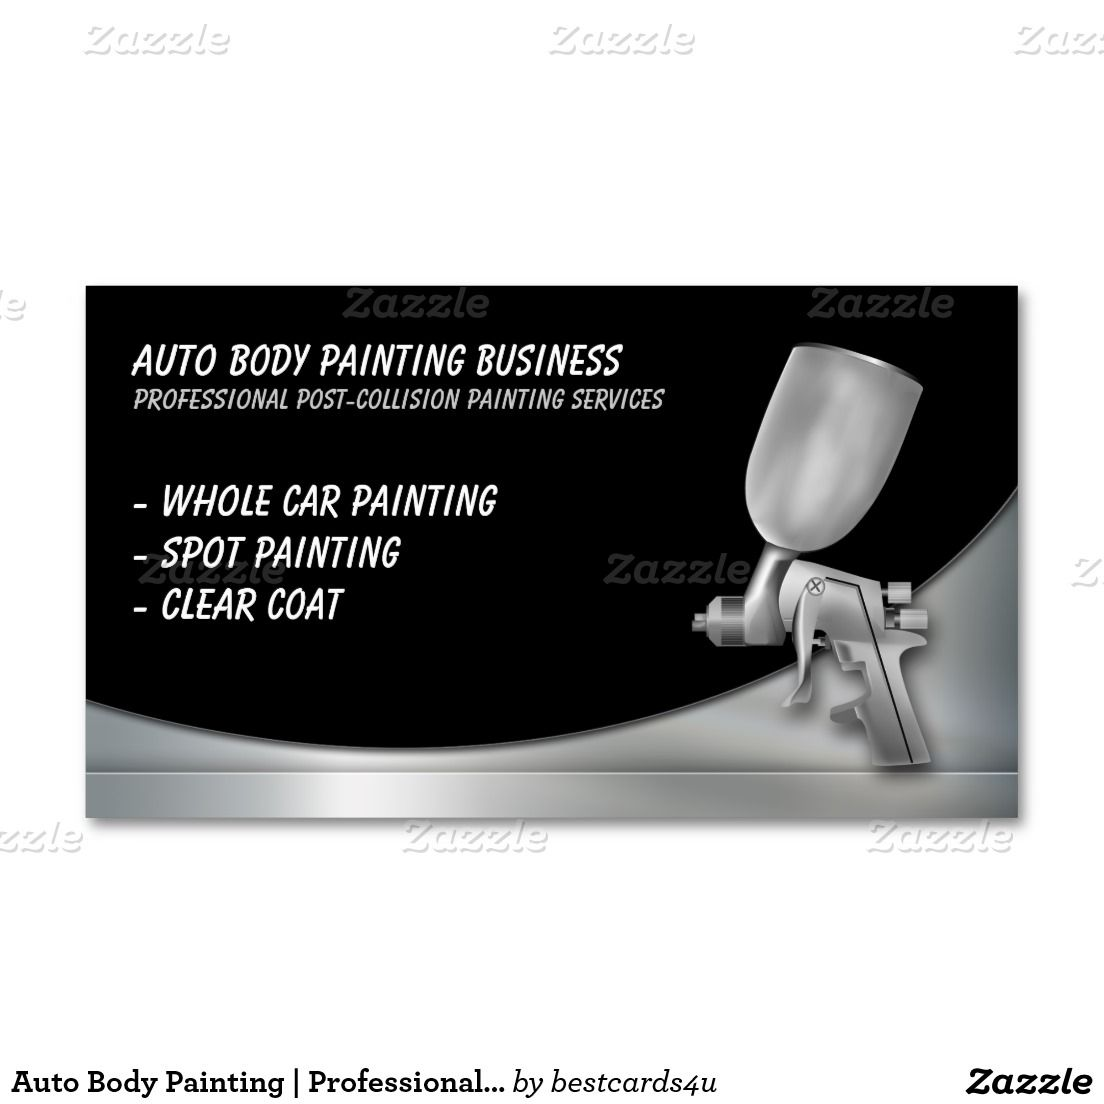 Auto Body Painting | Professional Business Card | Pinterest ...